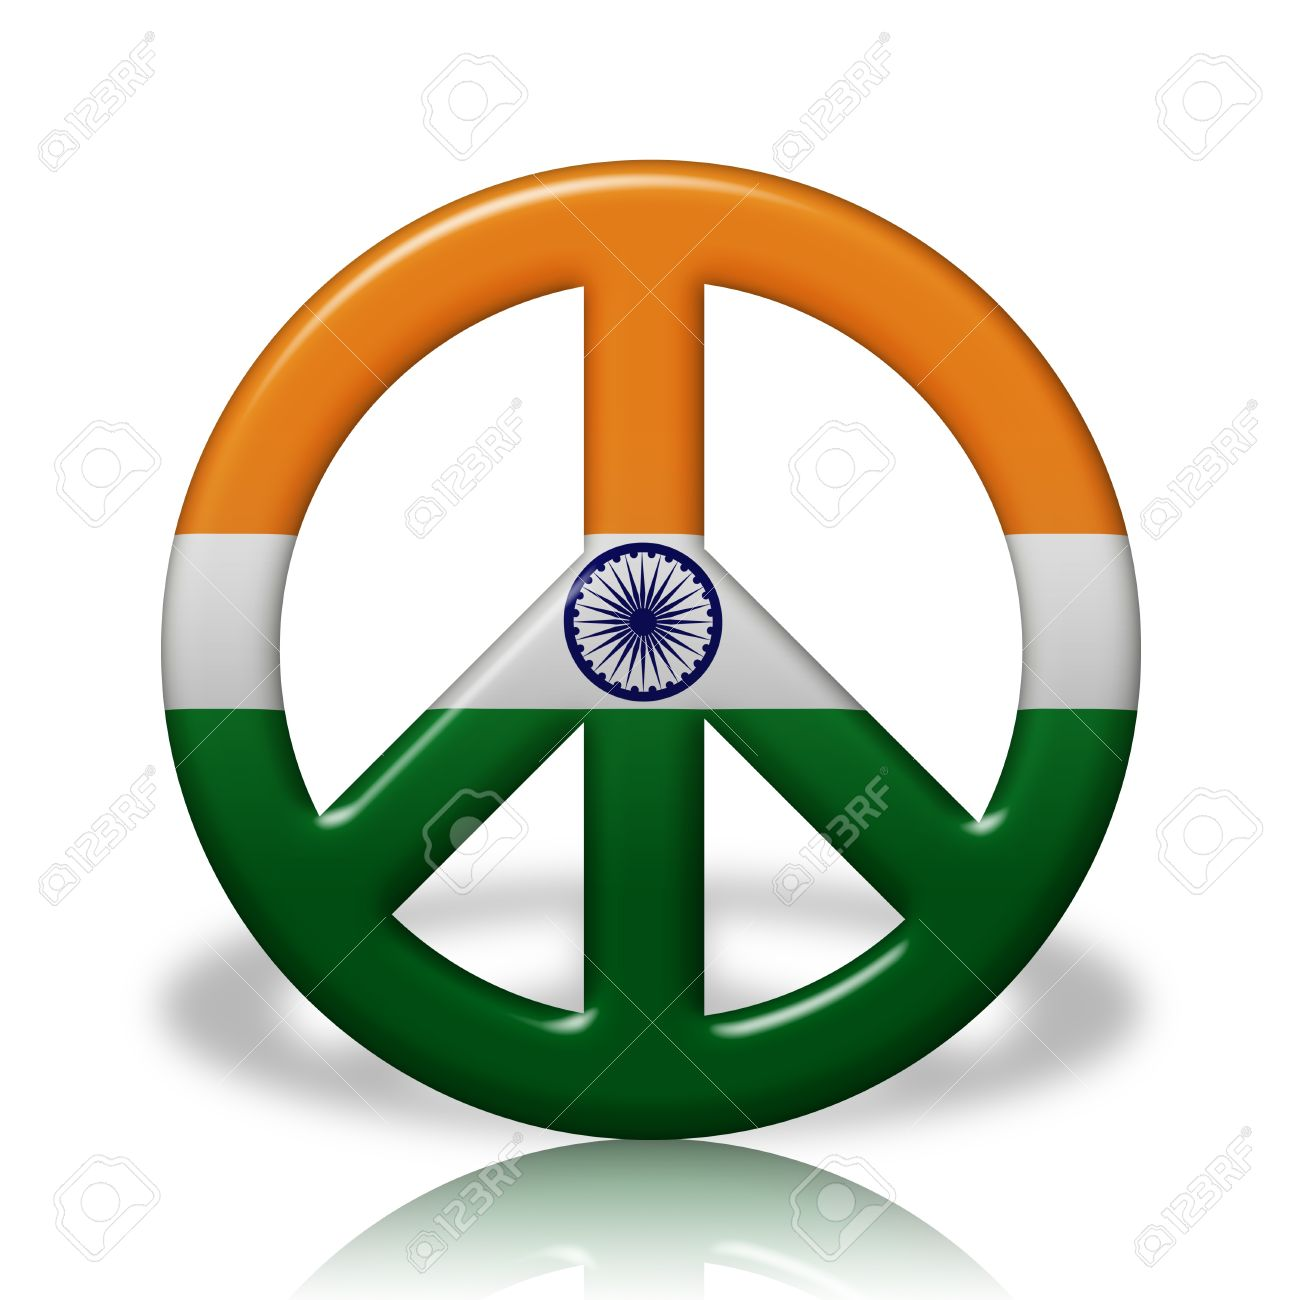 A peace sign symbol in 3d flag colors of india peace in india a peace sign symbol in 3d flag colors of india peace in india stock photo buycottarizona